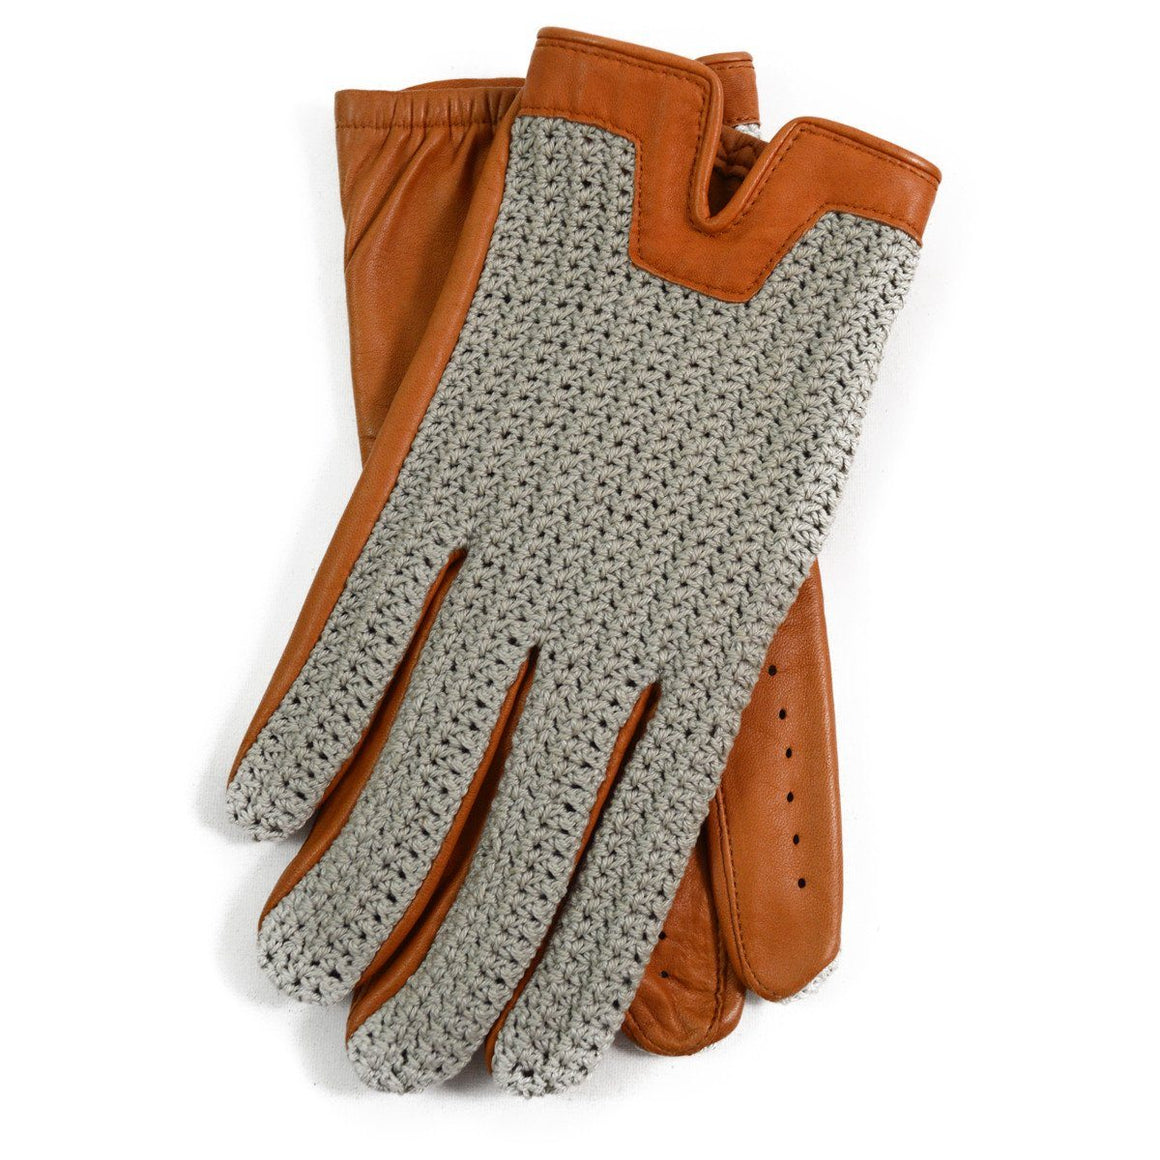 DENTS DONNINGTON Crochet and Leather Driving Gloves - Cork